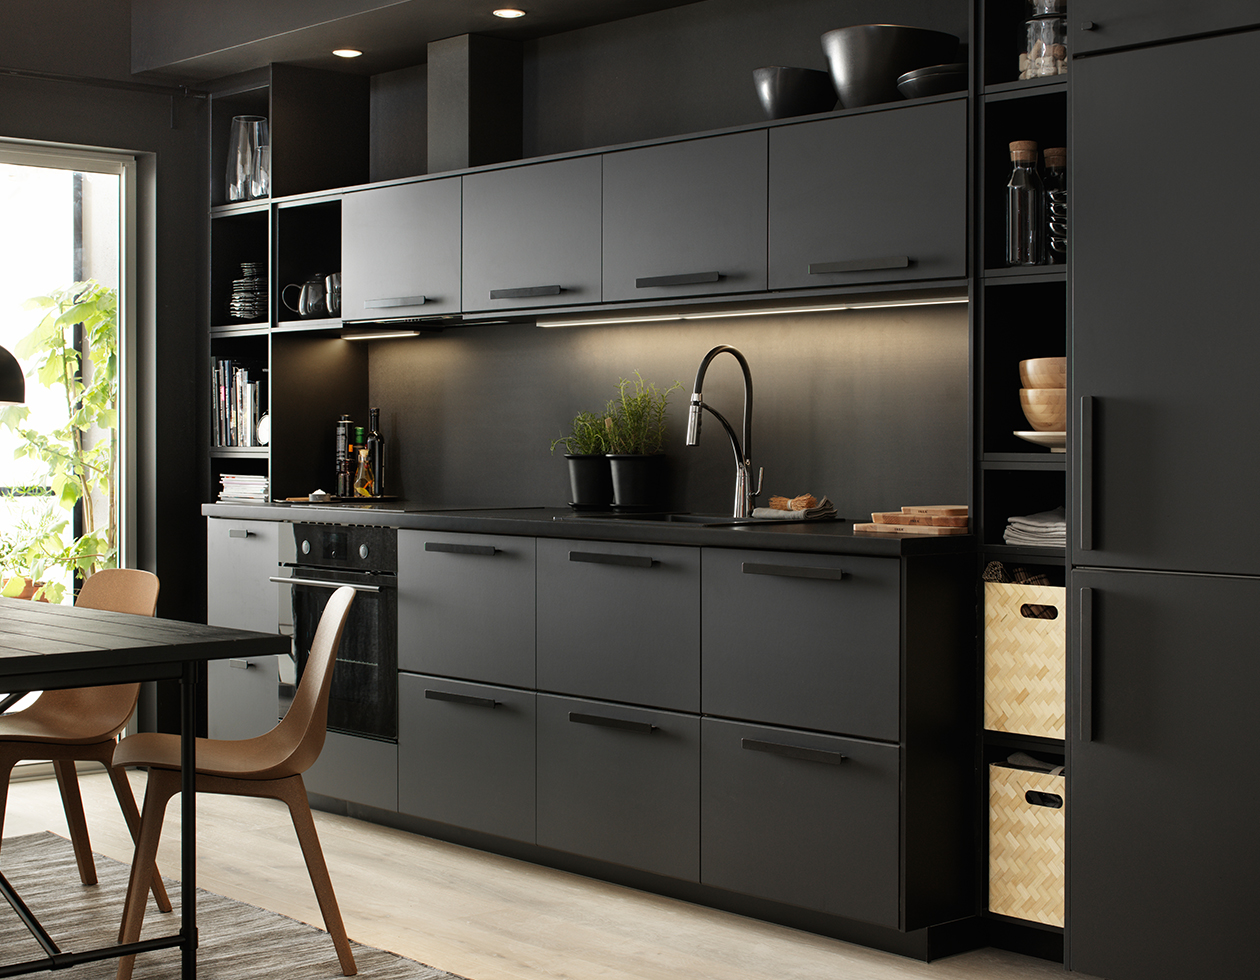 a sneak peak at the new ikea catalogue chfi 98 1. Black Bedroom Furniture Sets. Home Design Ideas